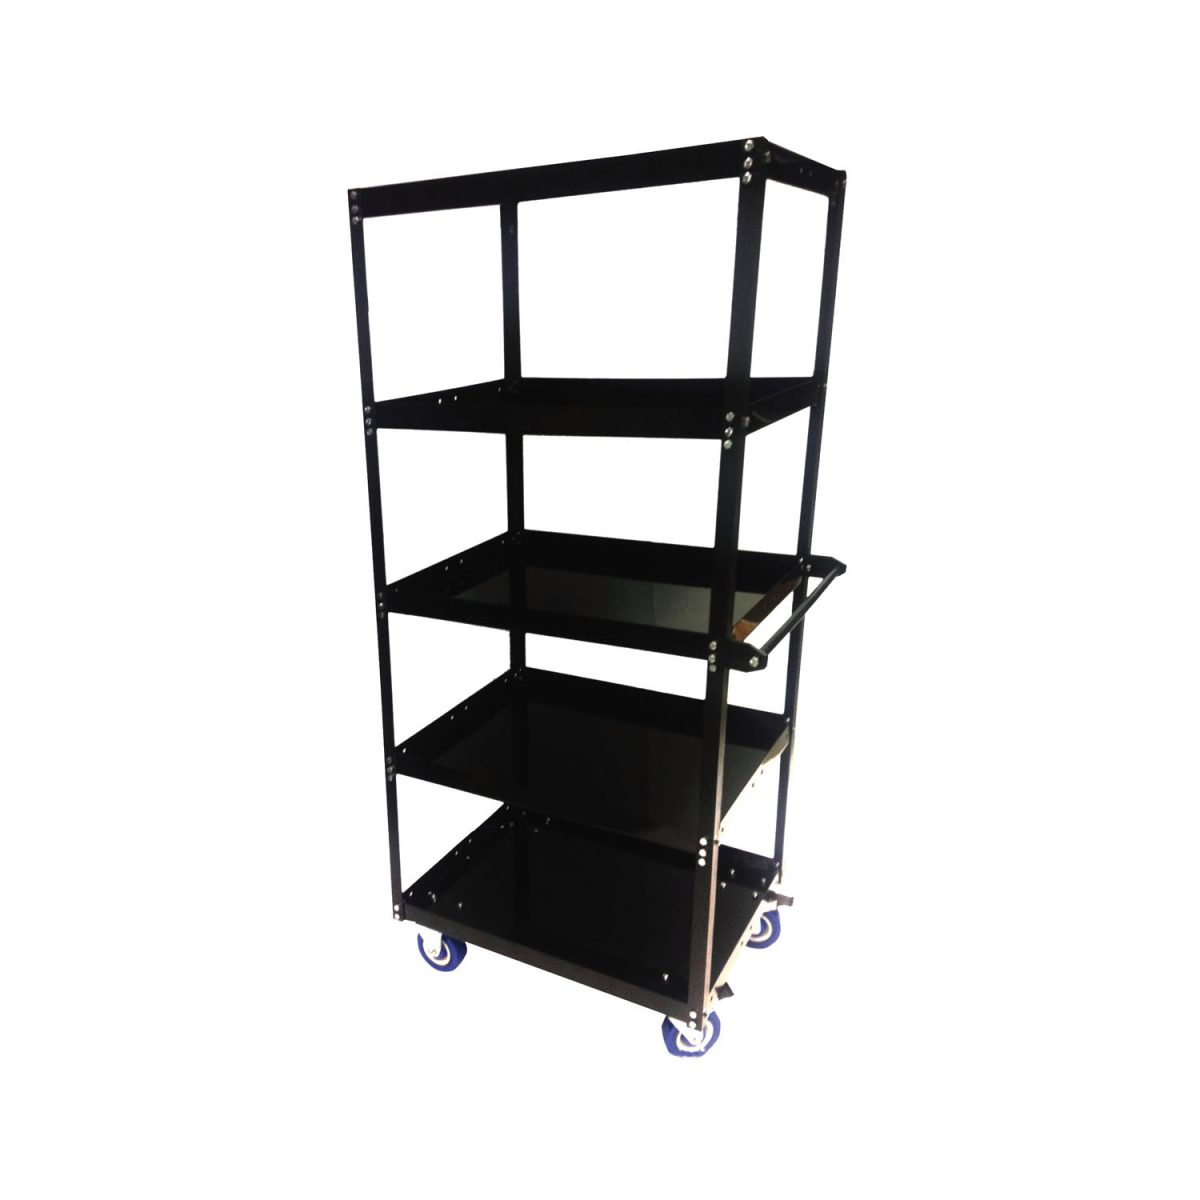 5 Shelf utility Cart